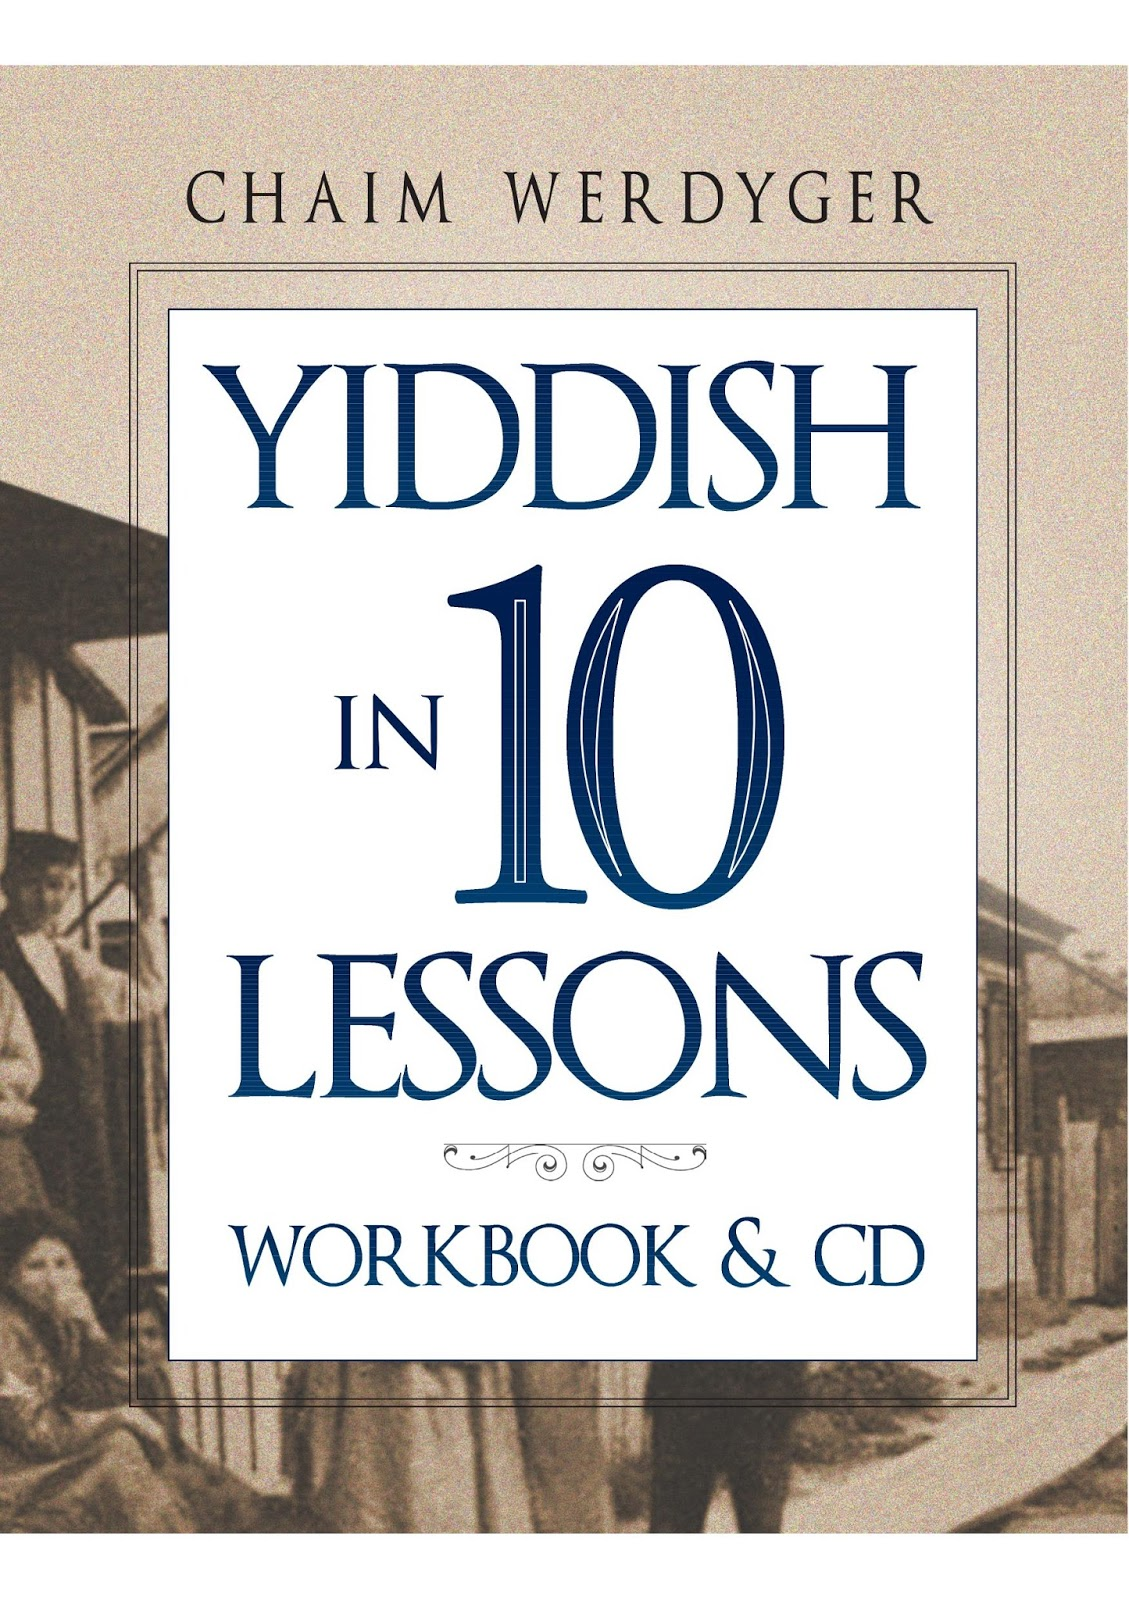 Chaim Werdygers Yiddish Blog Yiddish In 10 Lessons The First 35